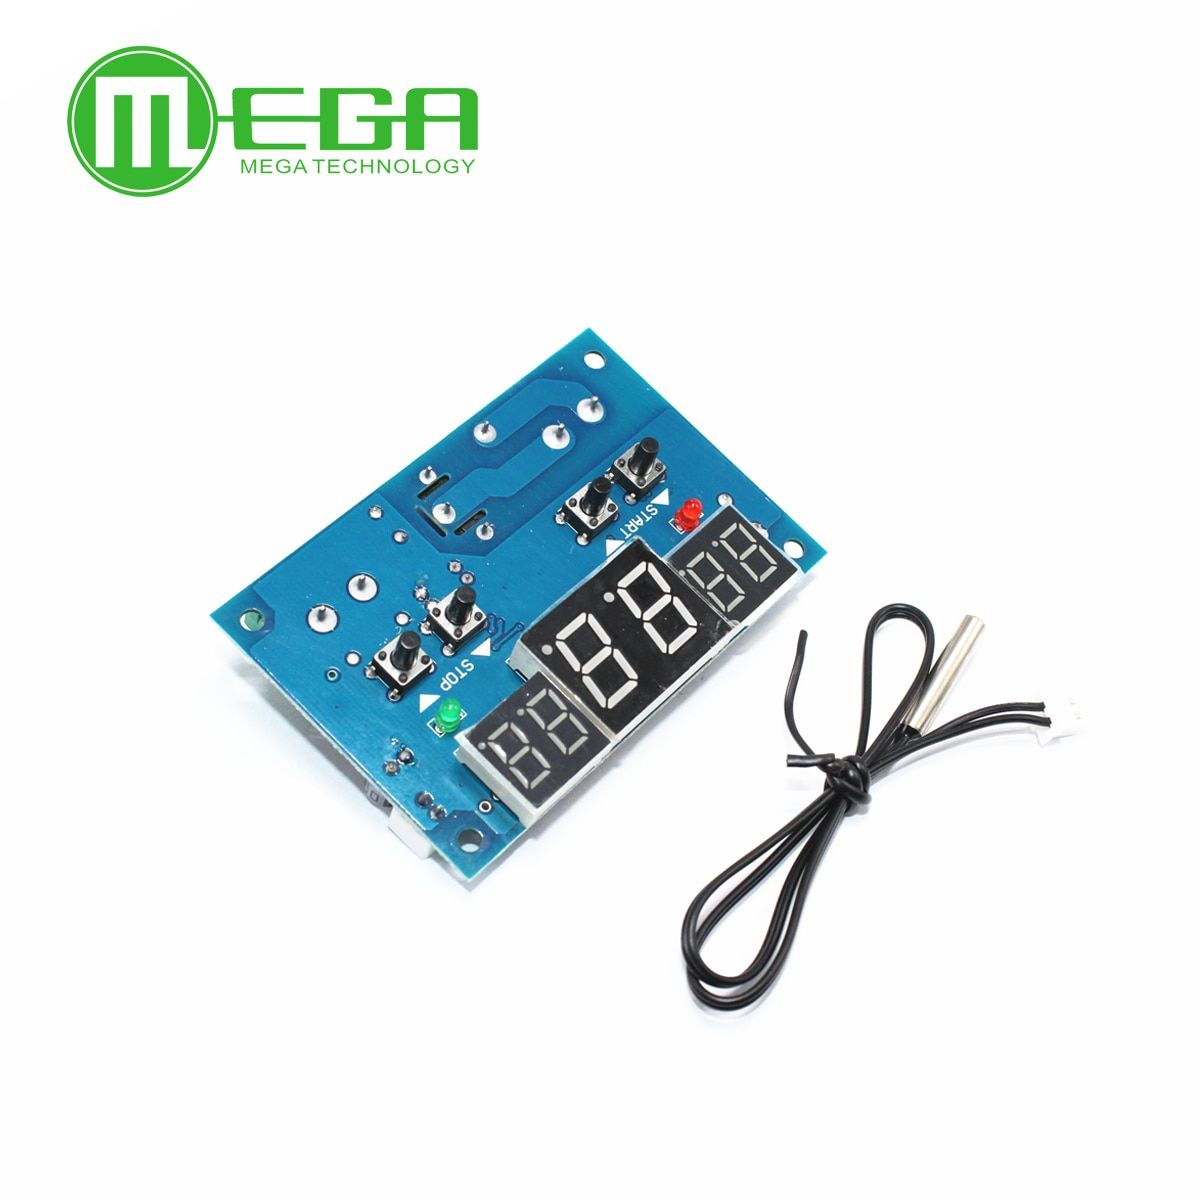 10pcs DC12V thermostat Intelligent digital thermostat temperature controller With NTC sensor W1401 led display